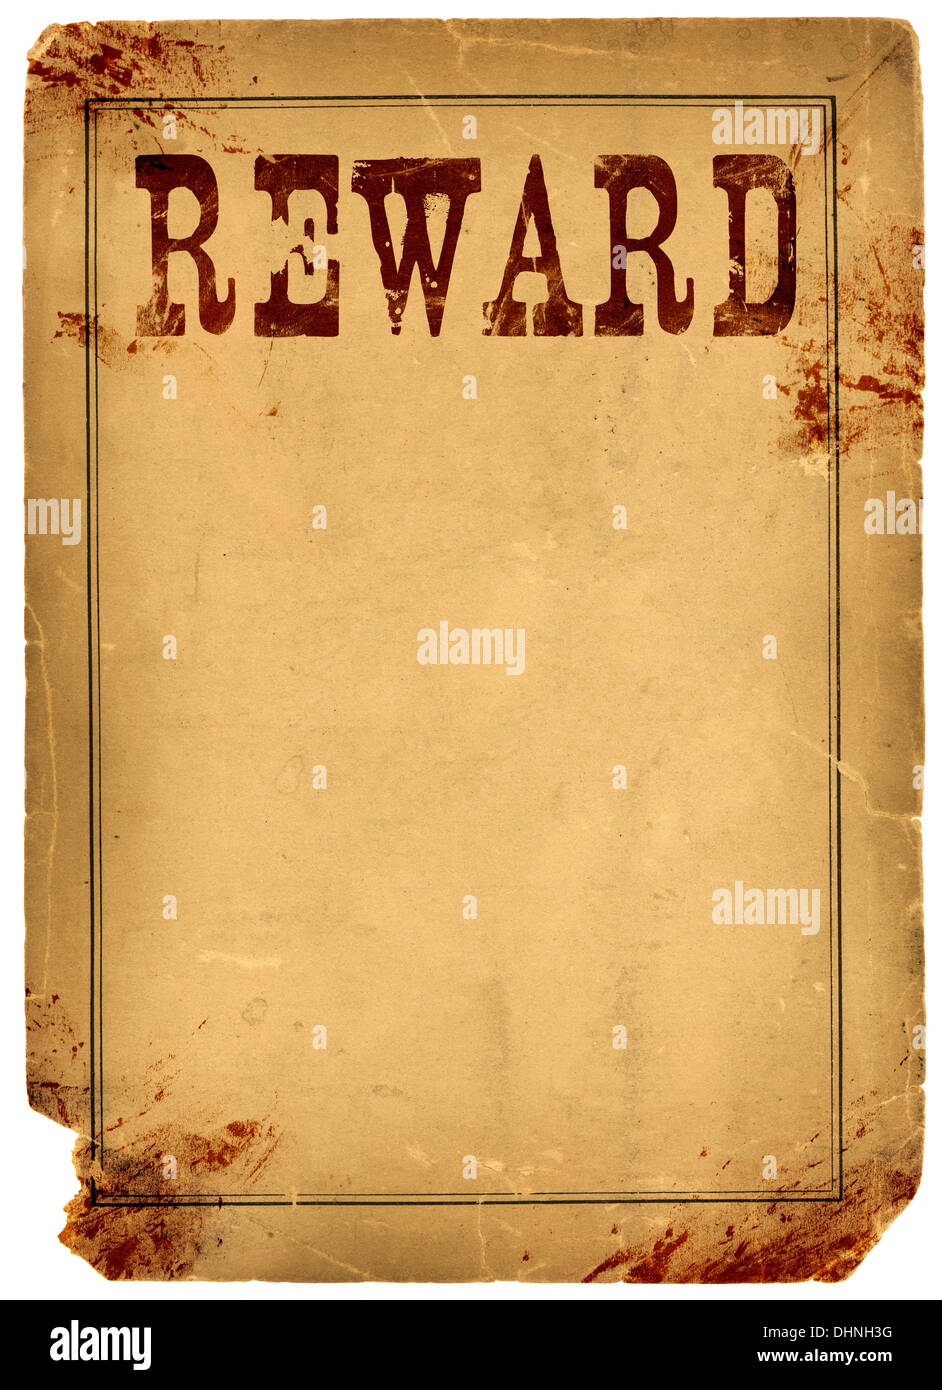 Bloody Stained Old Western Reward Poster Made From Real Antique 1800s Paper    Stock Image  Missing Reward Poster Template